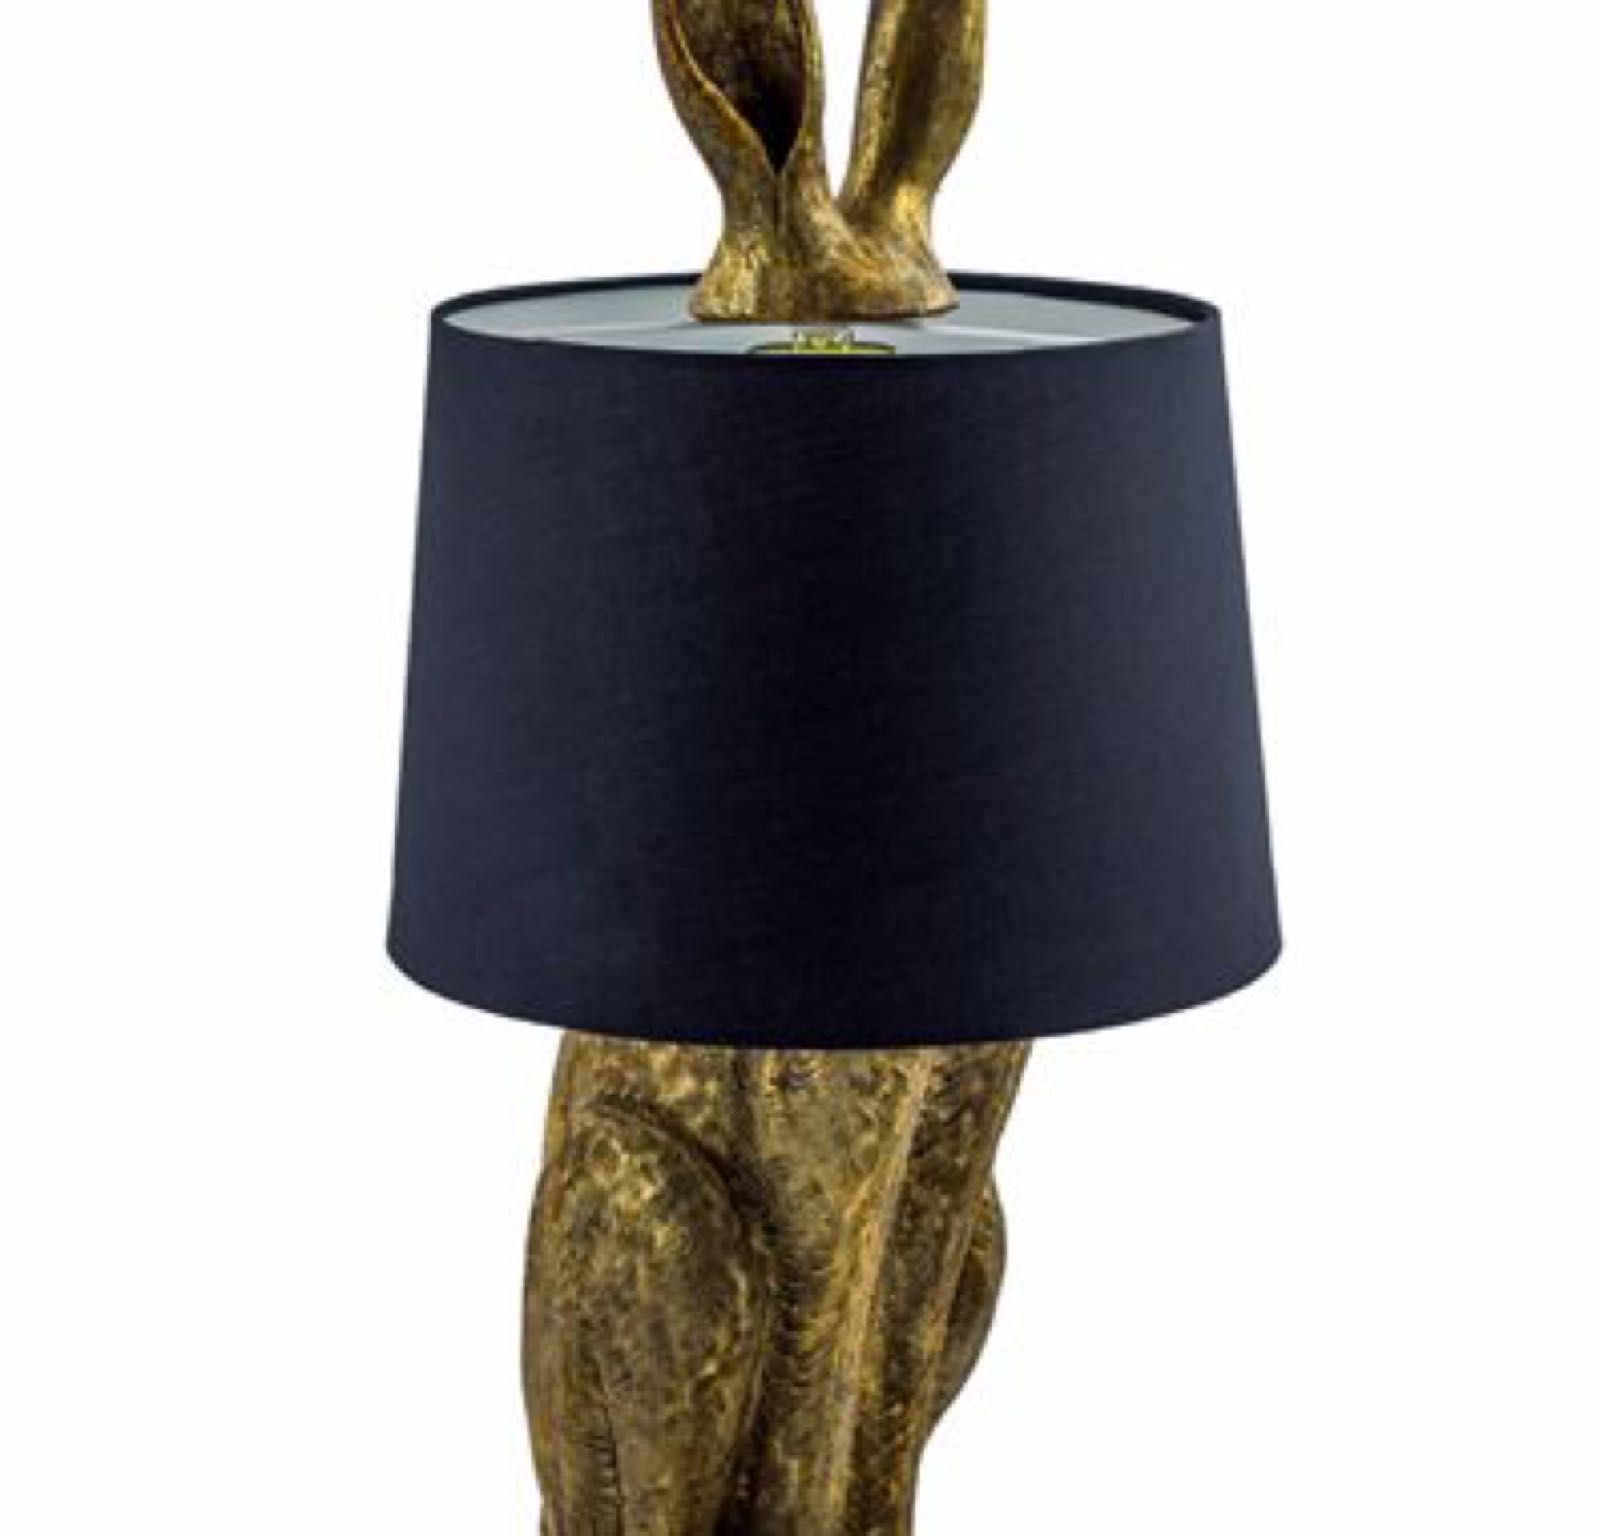 Antique Gold Rabbit lamp with Black shade TL77 74cm x 32 cm